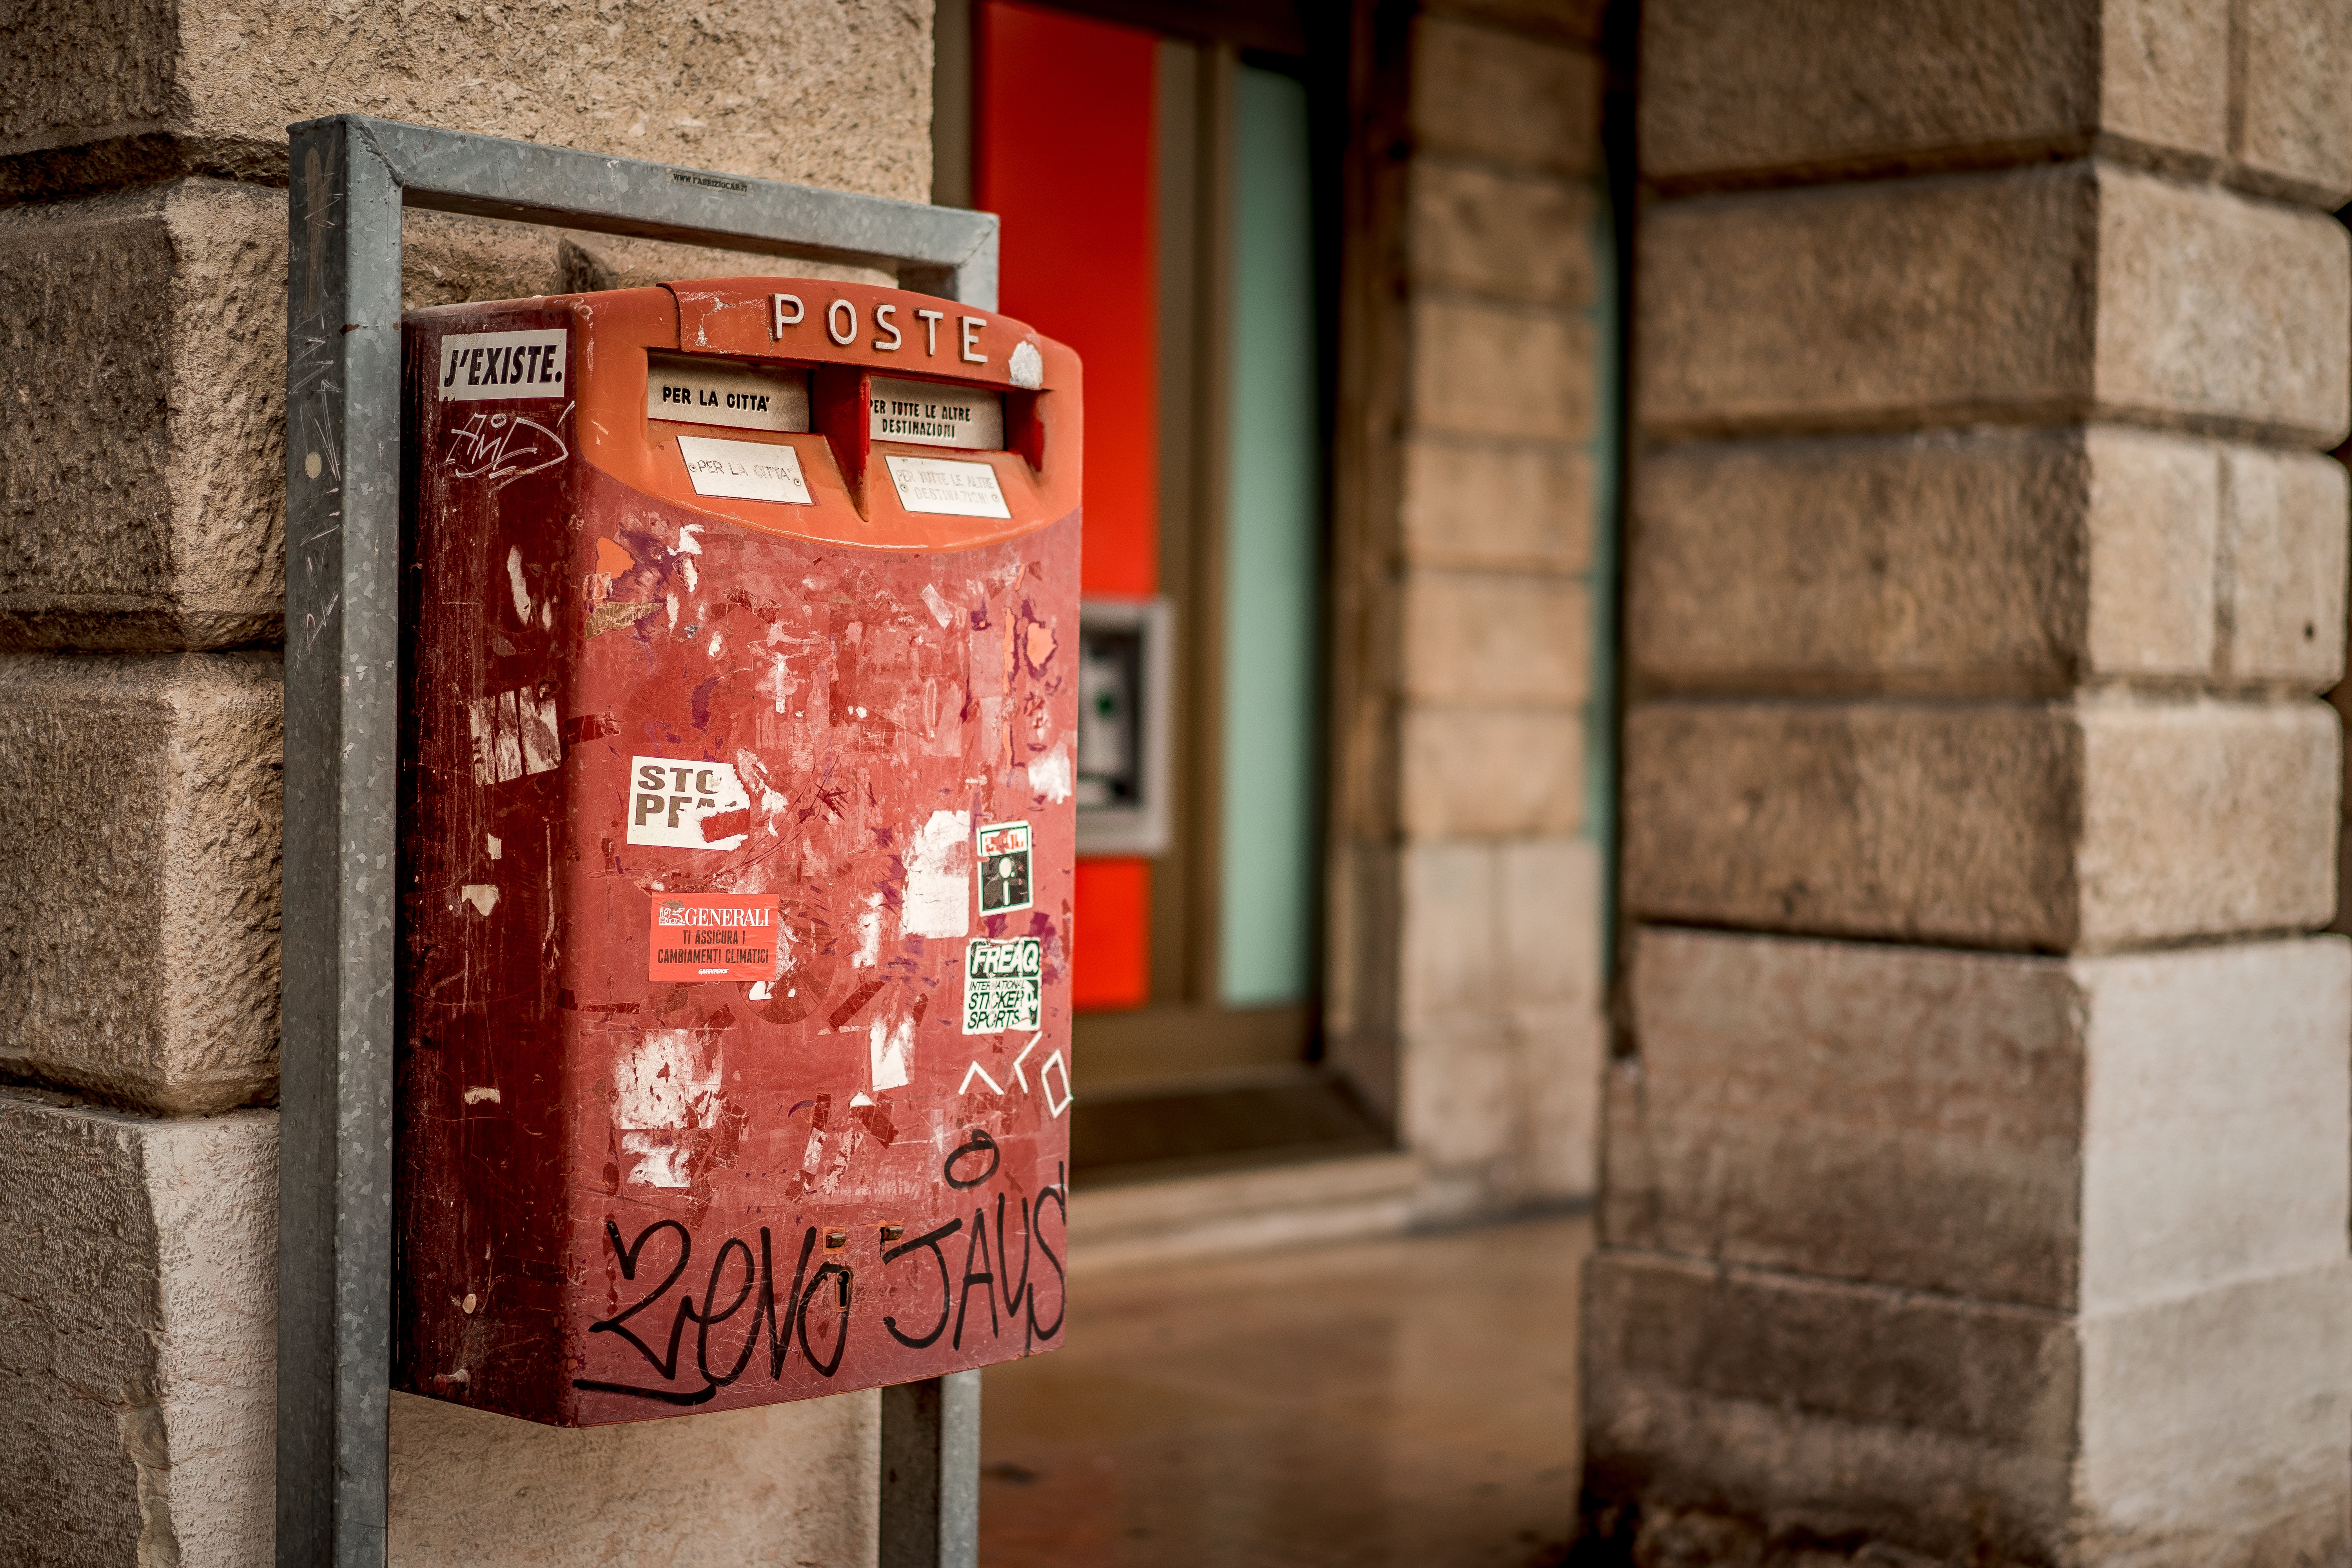 A red post box in Italy